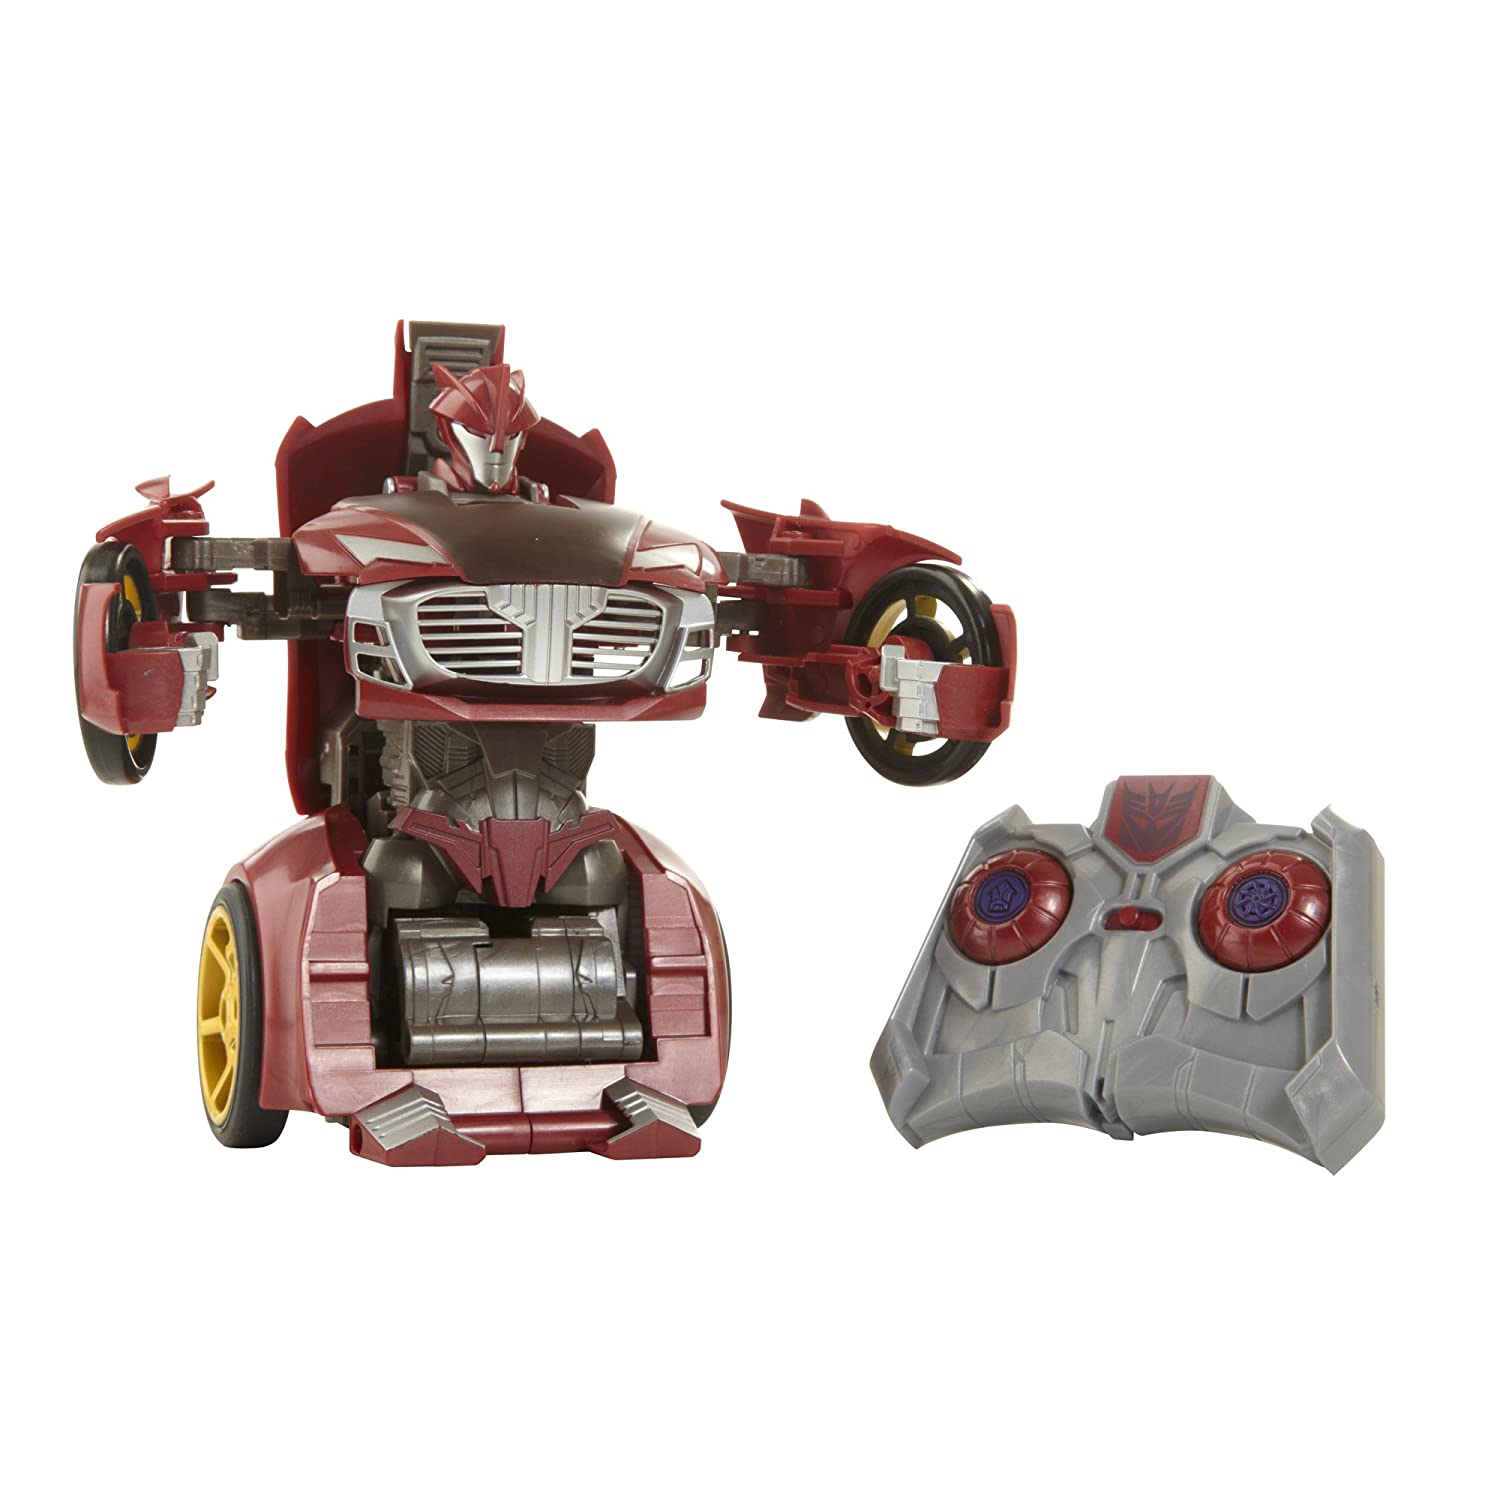 Transformers Prime Remote-Controlled Knock Out Vehicle Hasbro 37669